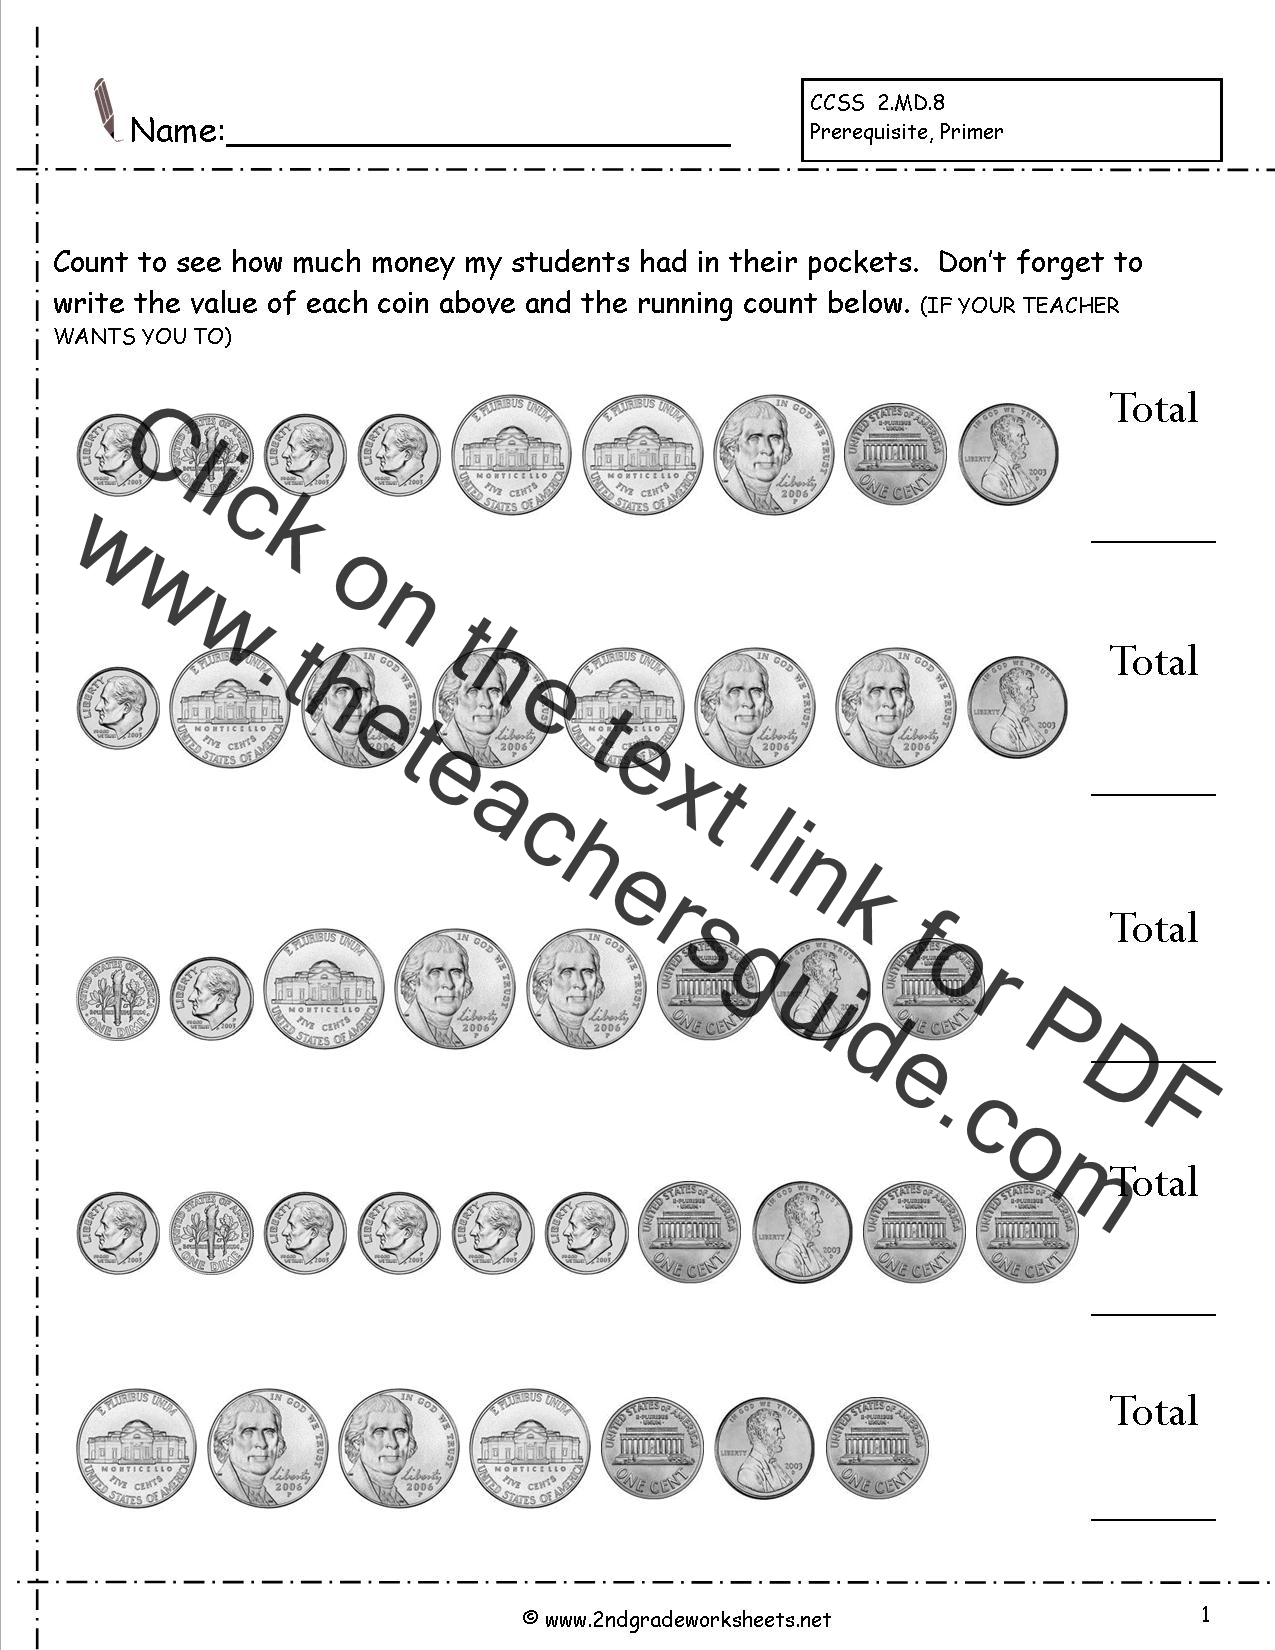 worksheet Adding Money counting coins and money worksheets printouts without quarters